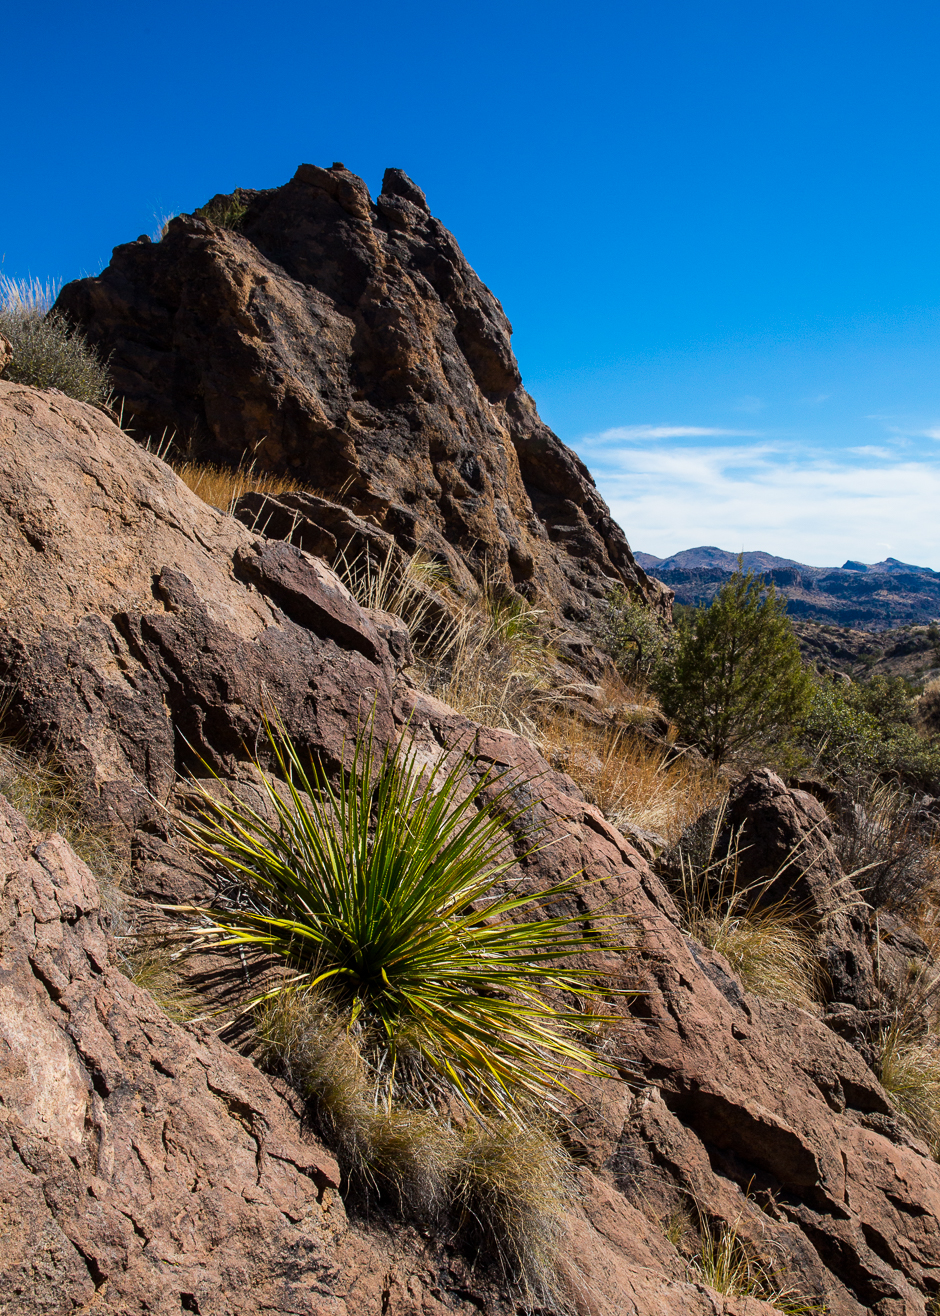 Chihuahuan Desert | Into the Mystic … Travels & Photography